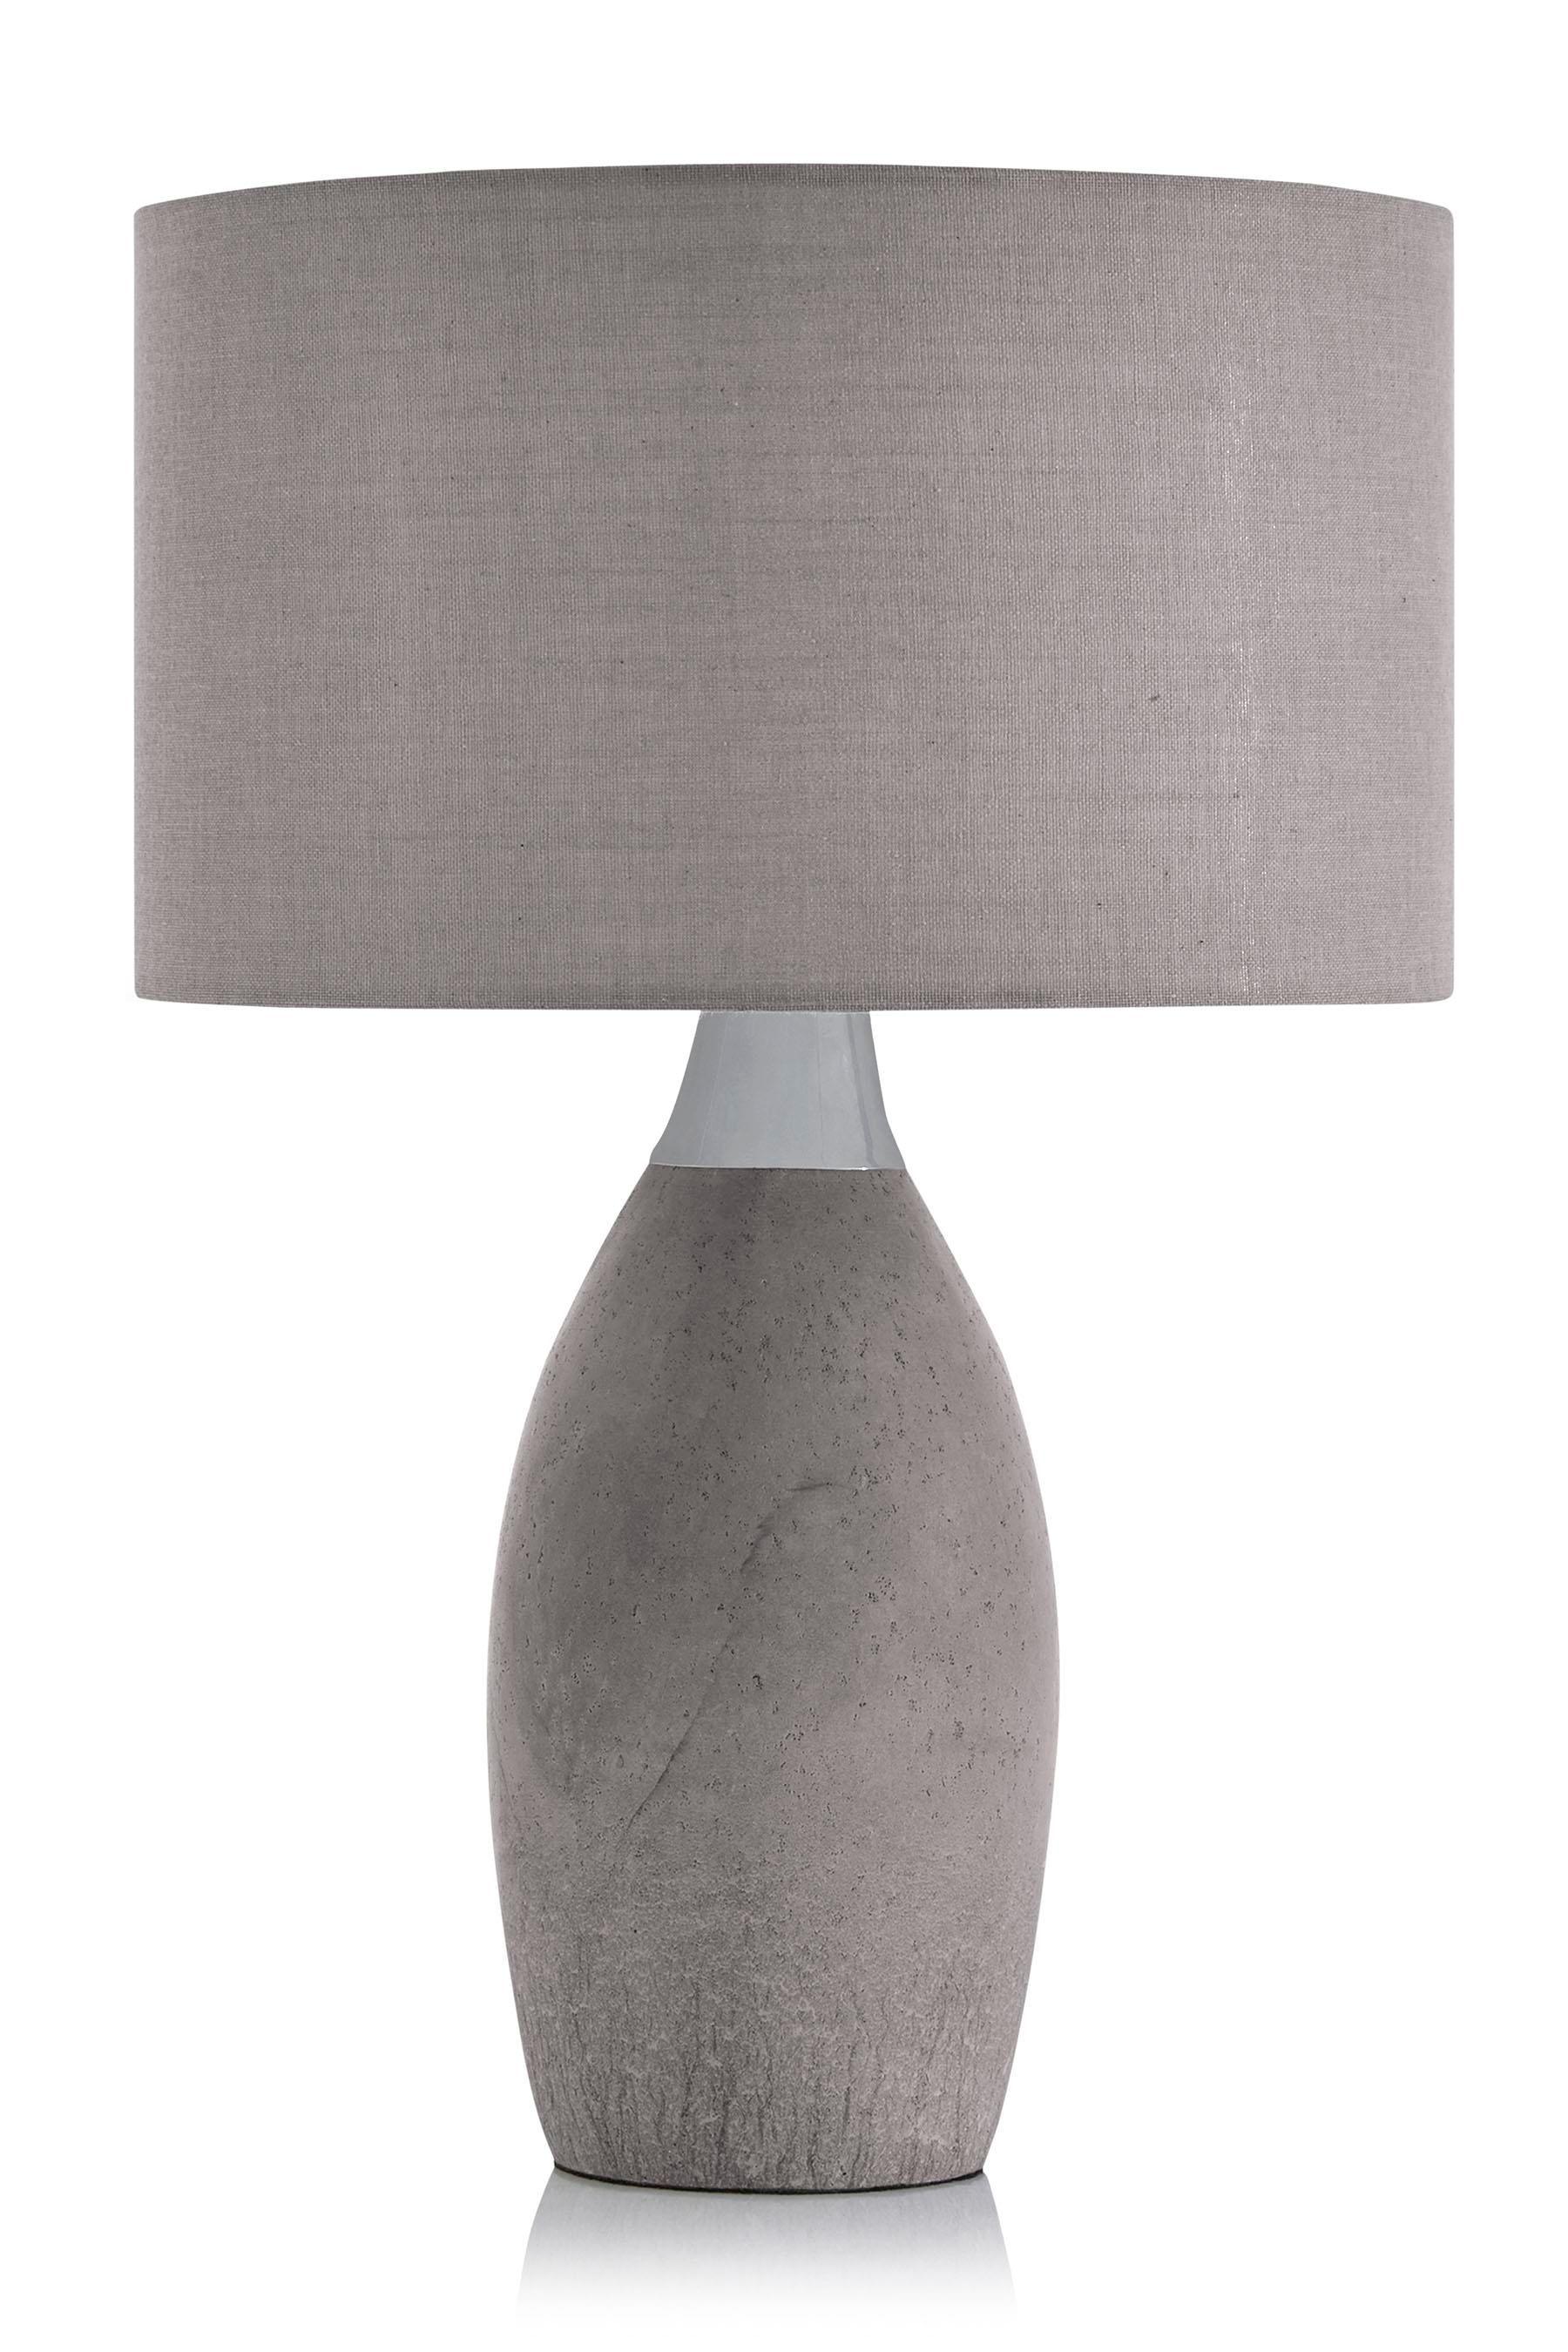 Buy concrete and chrome table lamp from the next uk online shop buy concrete and chrome table lamp from the next uk online shop aloadofball Image collections